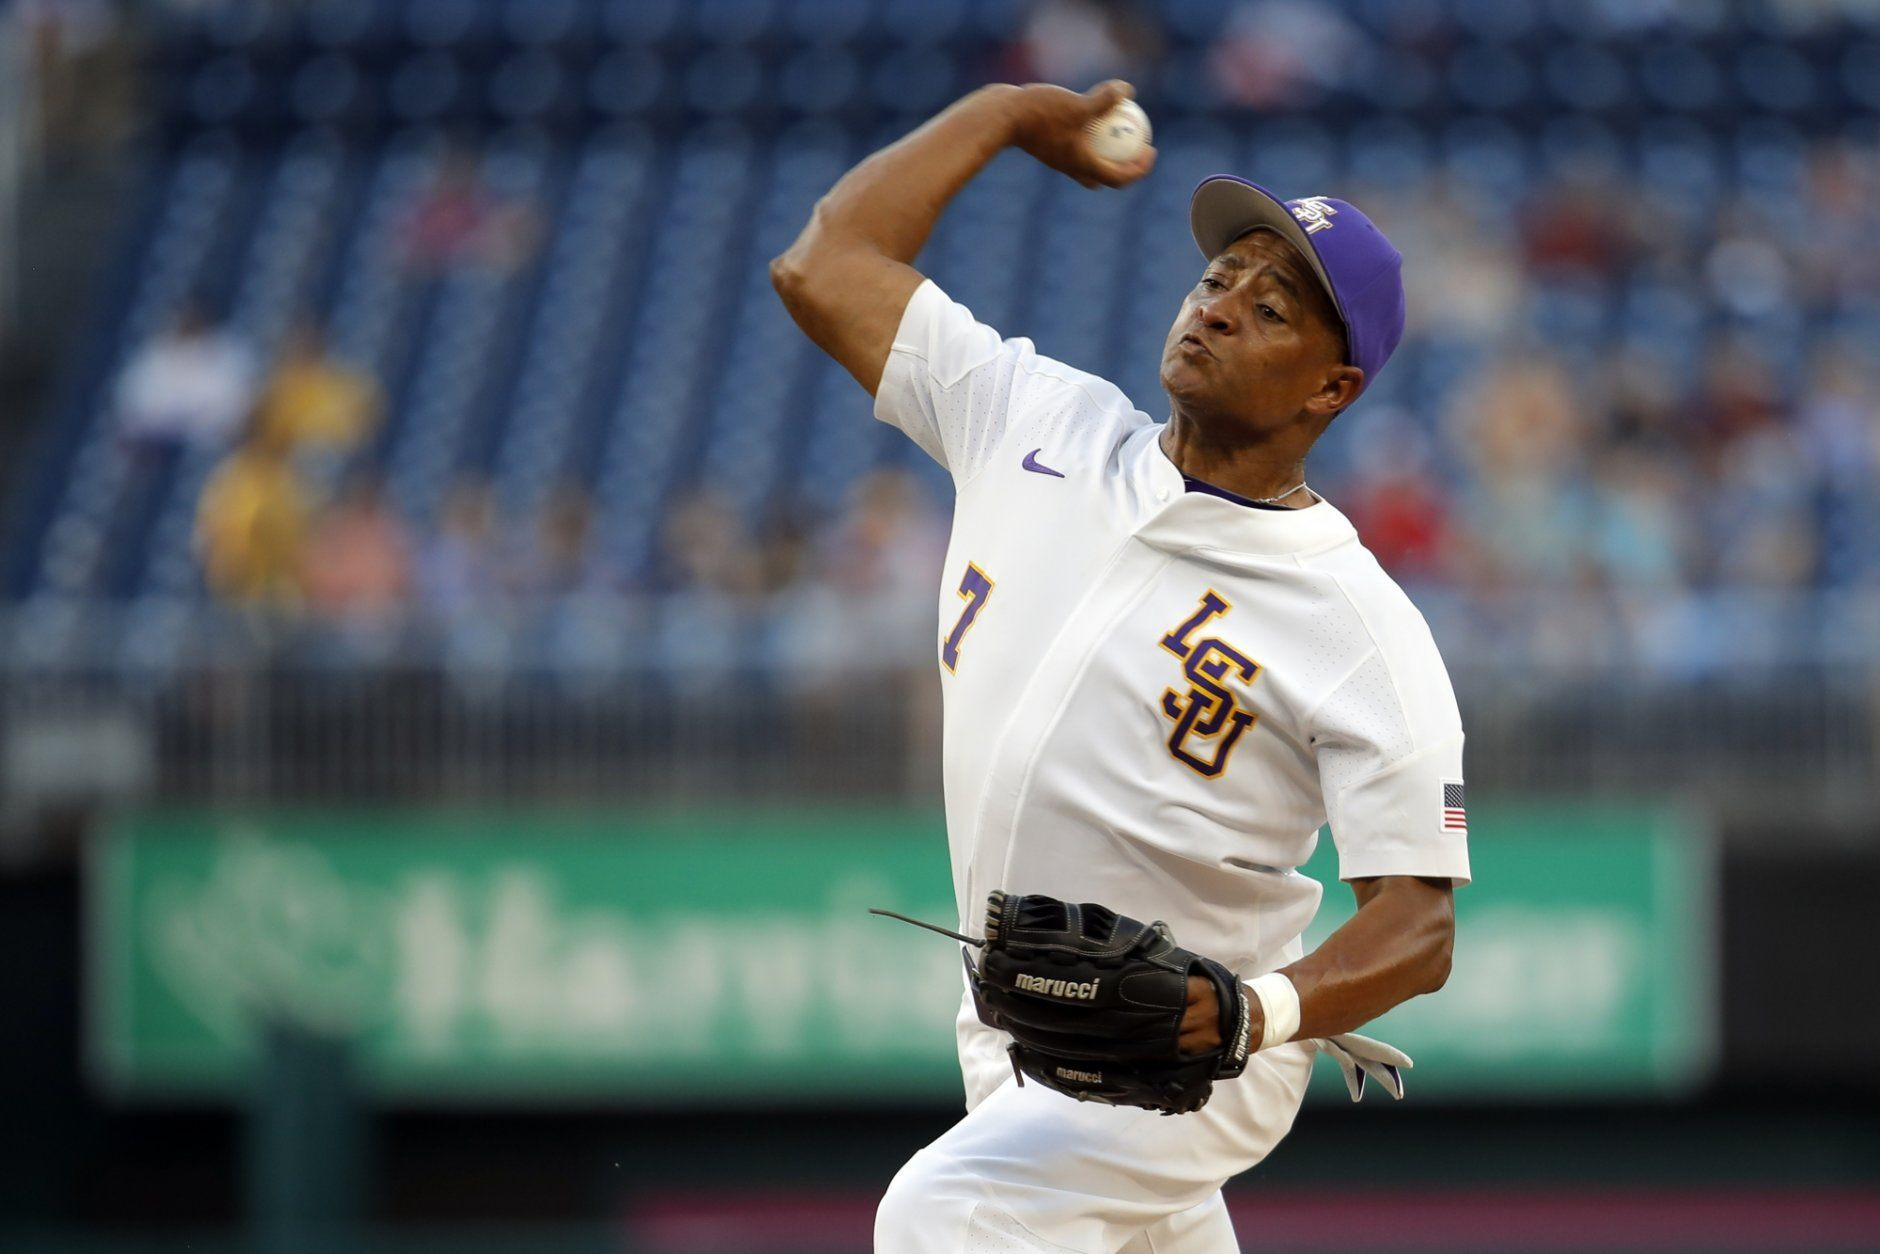 Democrats starting pitcher Rep. Cedric Richmond, D-La., throws during the first inning of the Congressional Baseball Game at Nationals Park in Washington, Wednesday, June 26, 2019. (AP Photo/Carolyn Kaster)